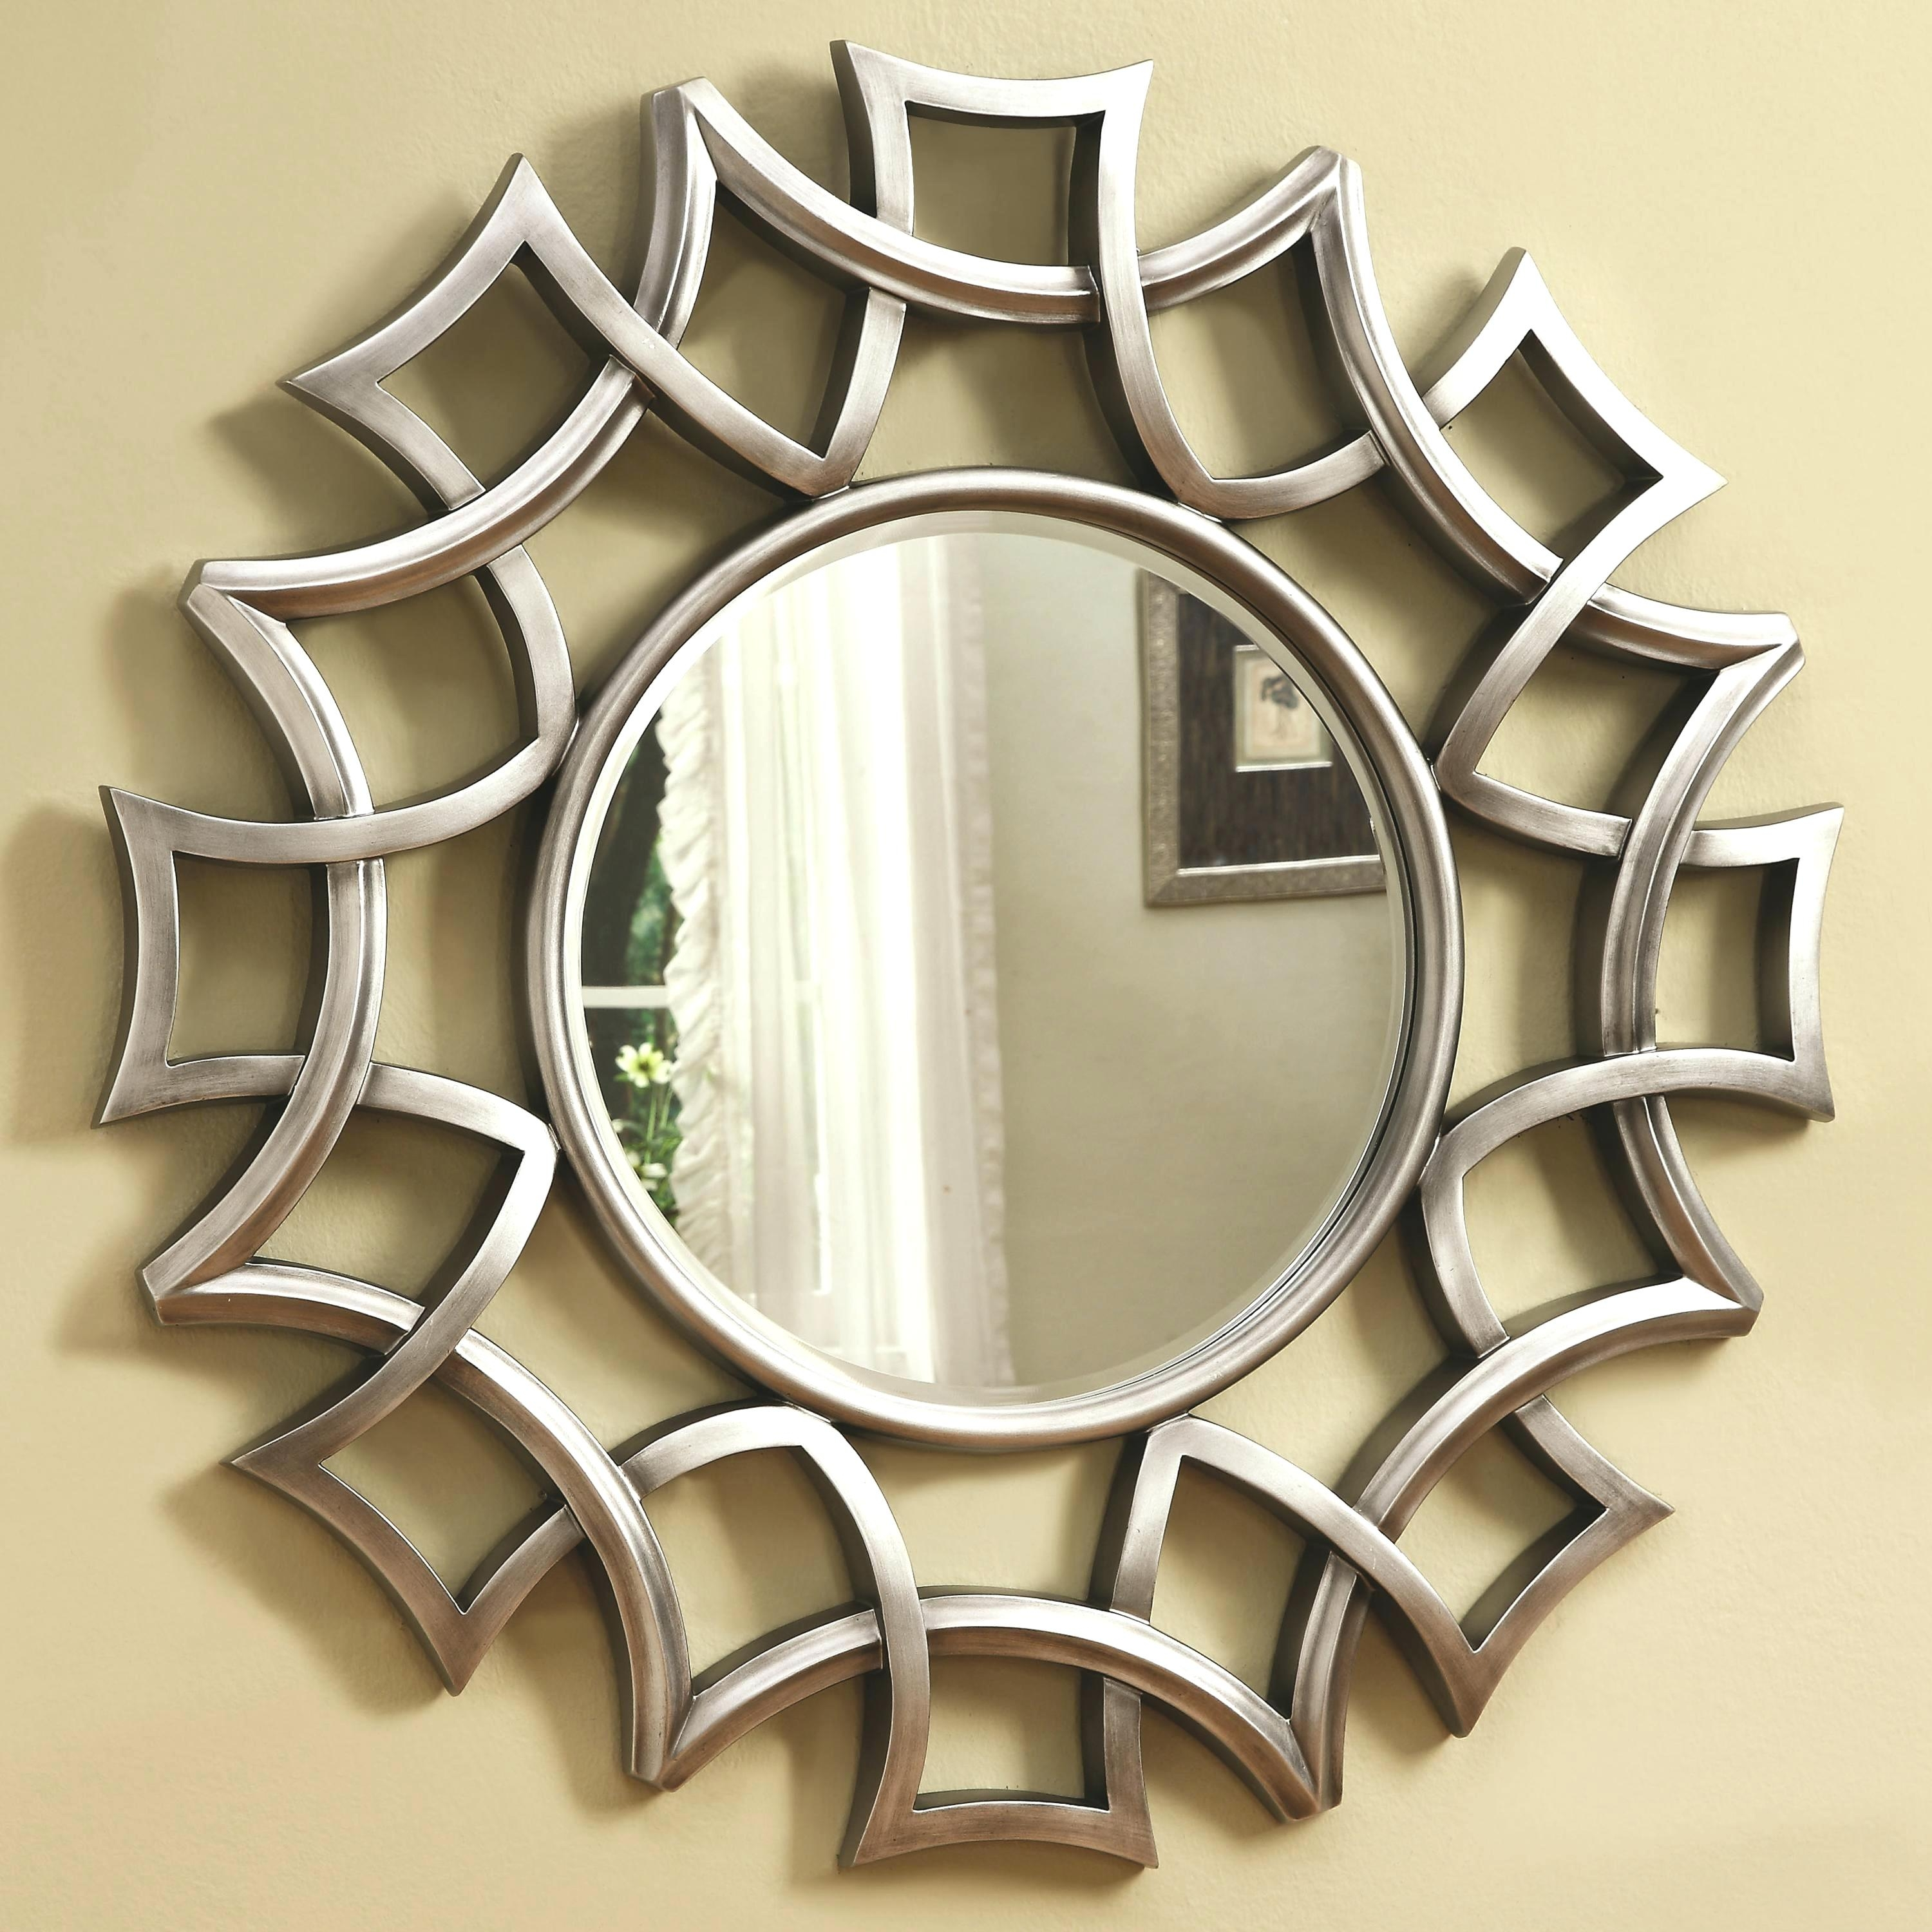 Round Mirror Large Contemporary Wall Mirrors Decorative Modern Bar Pertaining To Designer Mirrors For Walls (Image 13 of 15)